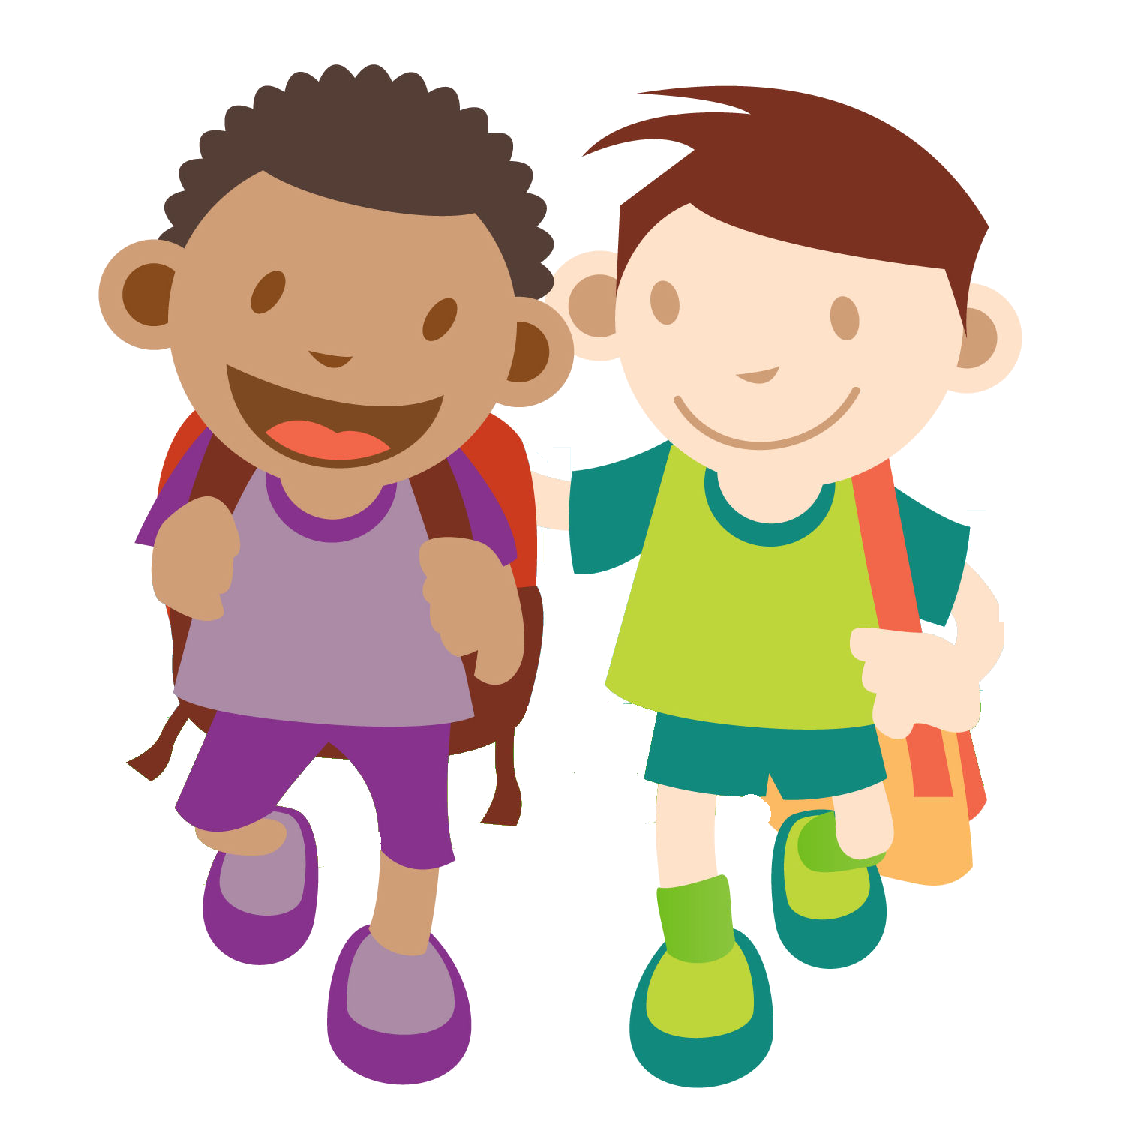 banner library download Kids walking to school clipart. Image result for black